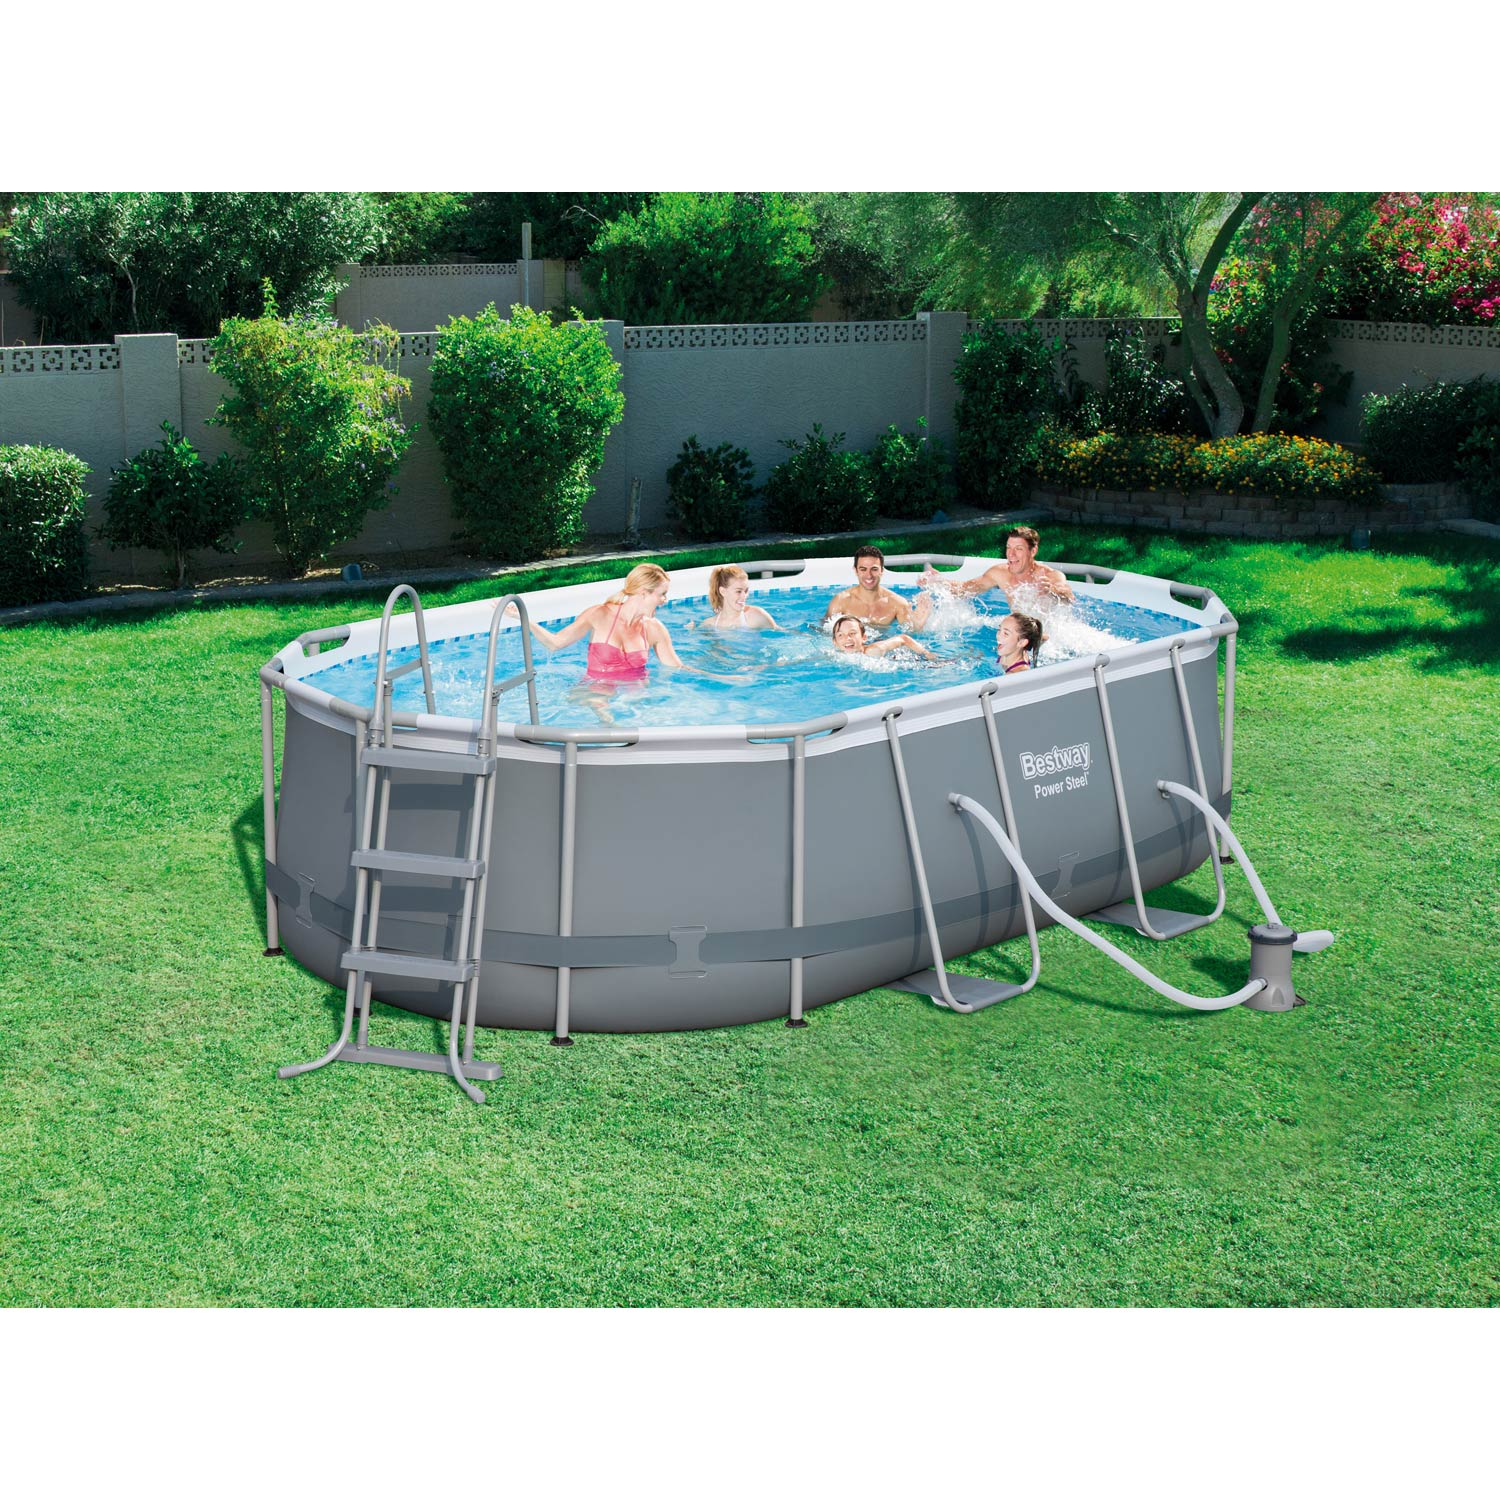 Piscine hors sol autoportante tubulaire bestway l x for Piscine hors sol enterrable